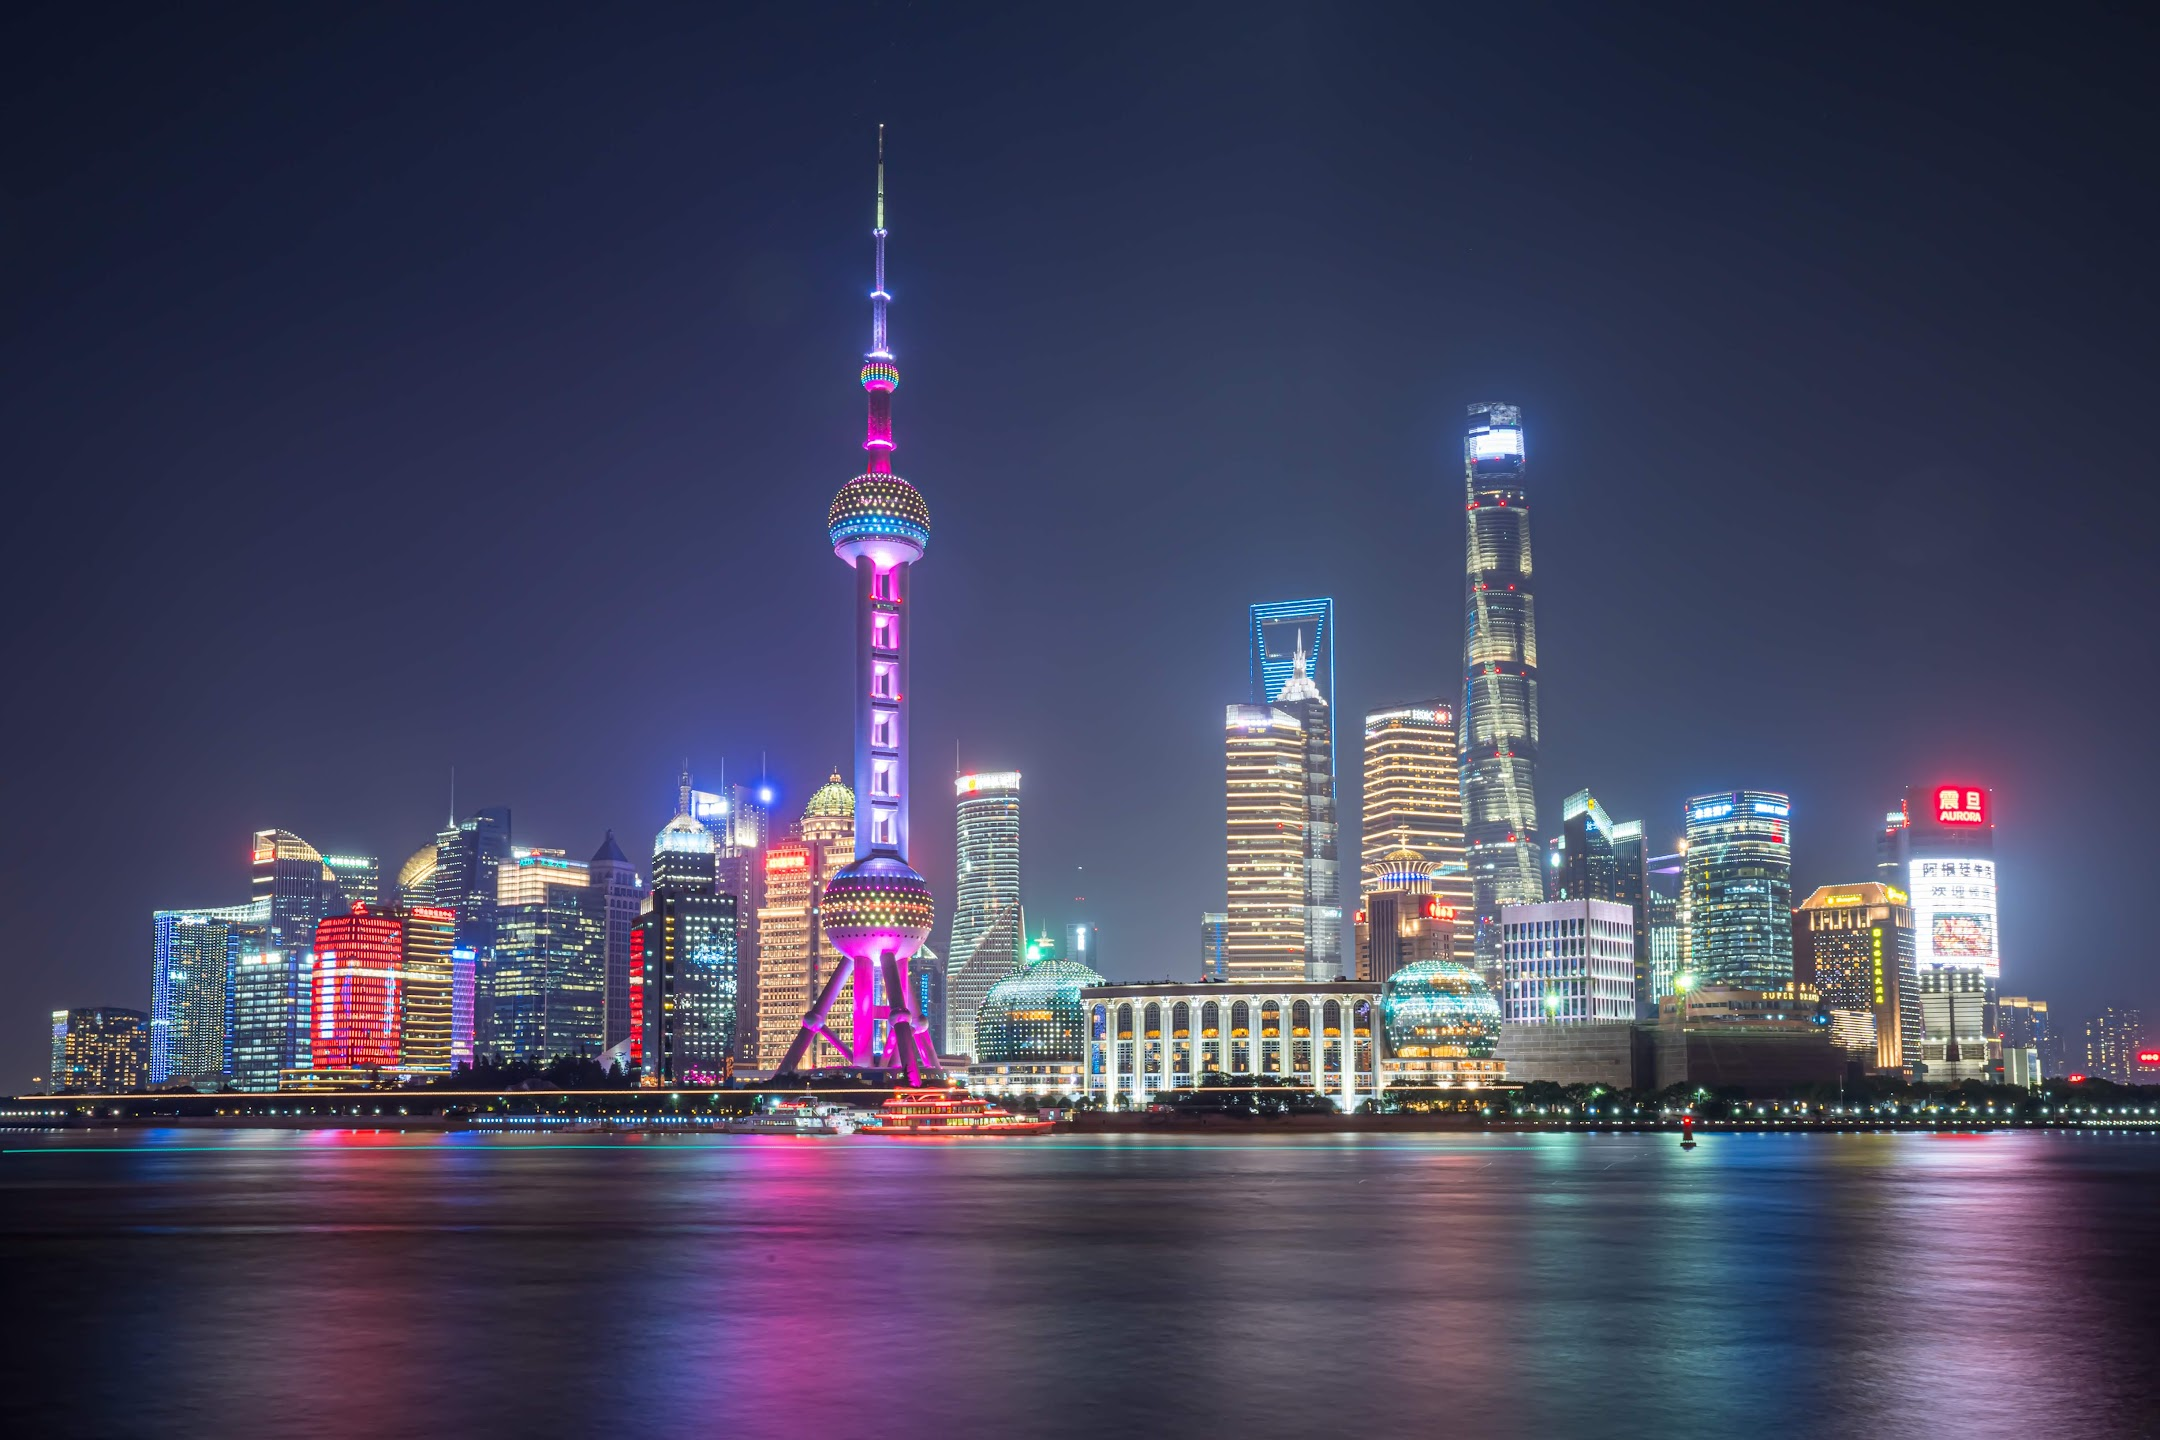 Shanghai Waitan (The Bund) Pudong2